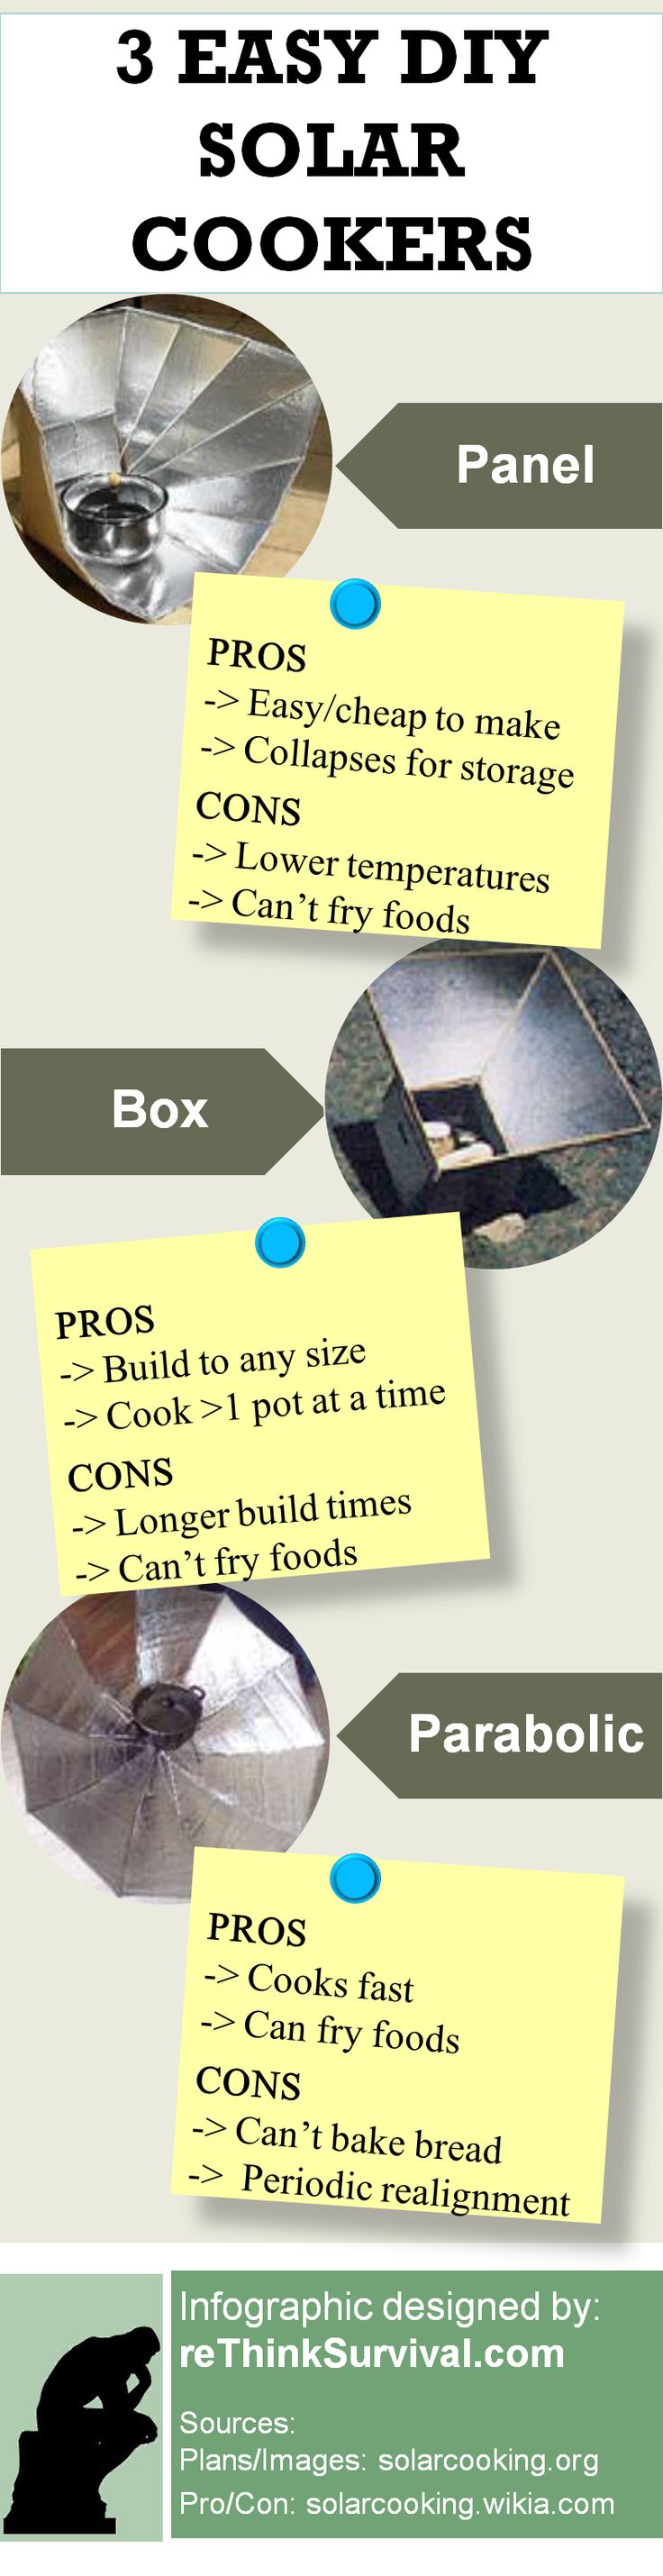 solar cookers infographic:  Link for Building Plans:  http://solarcooking.wikia.com/wiki/Category:Solar_cooker_plans